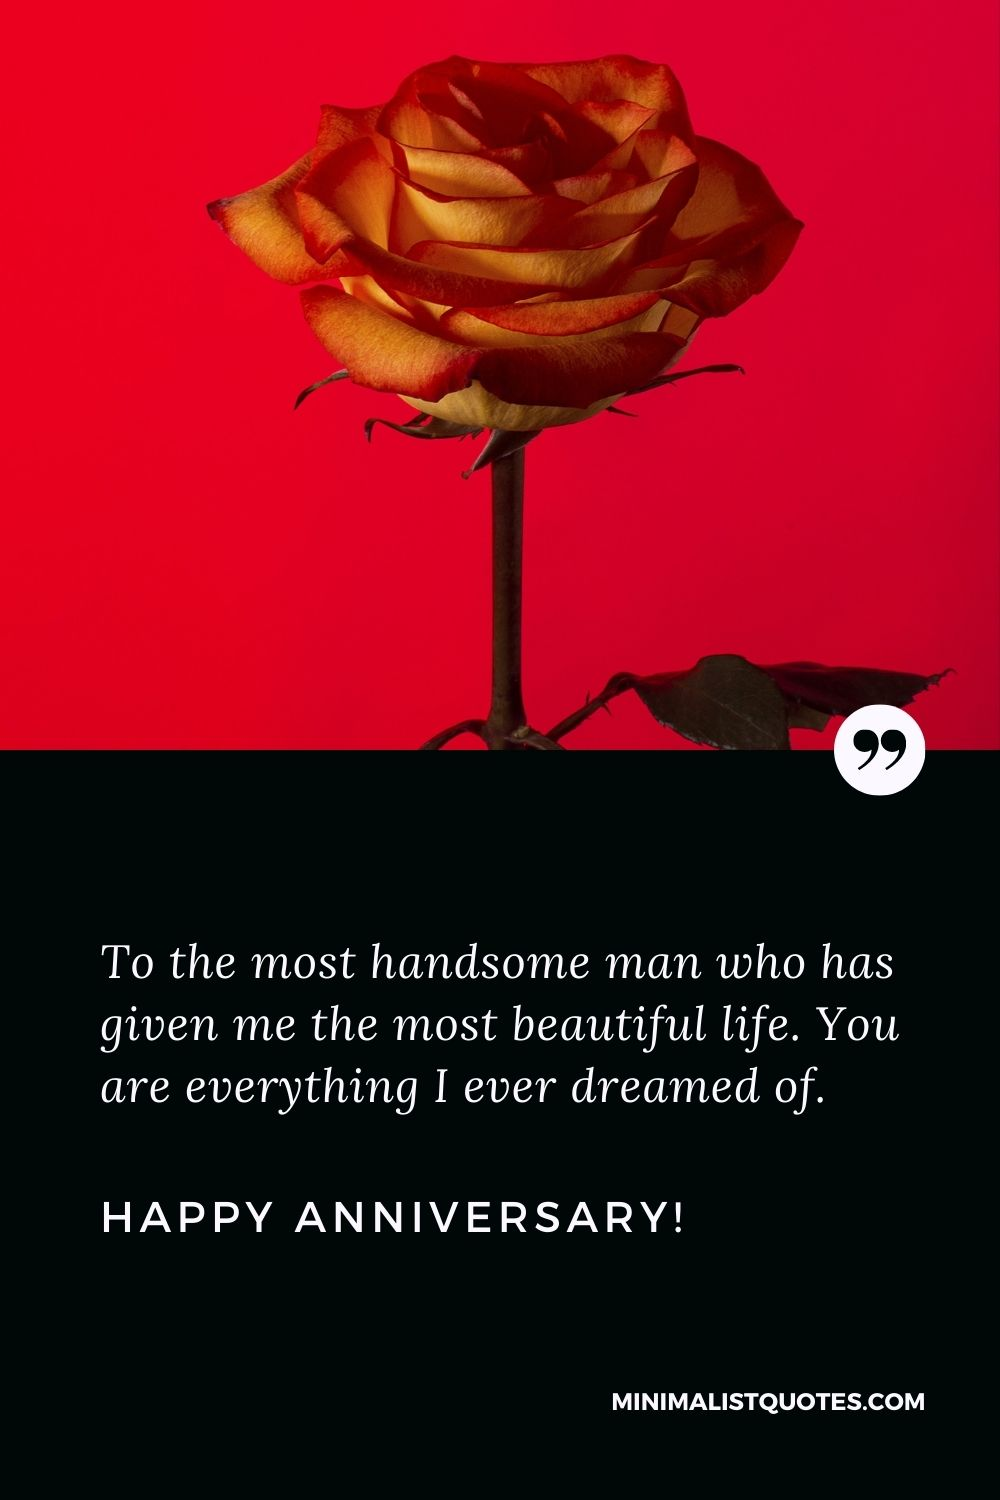 Wedding anniversary wishes to husband: To the most handsome man who has given me the most beautiful life. You are everything I ever dreamed of. Happy Anniversary!